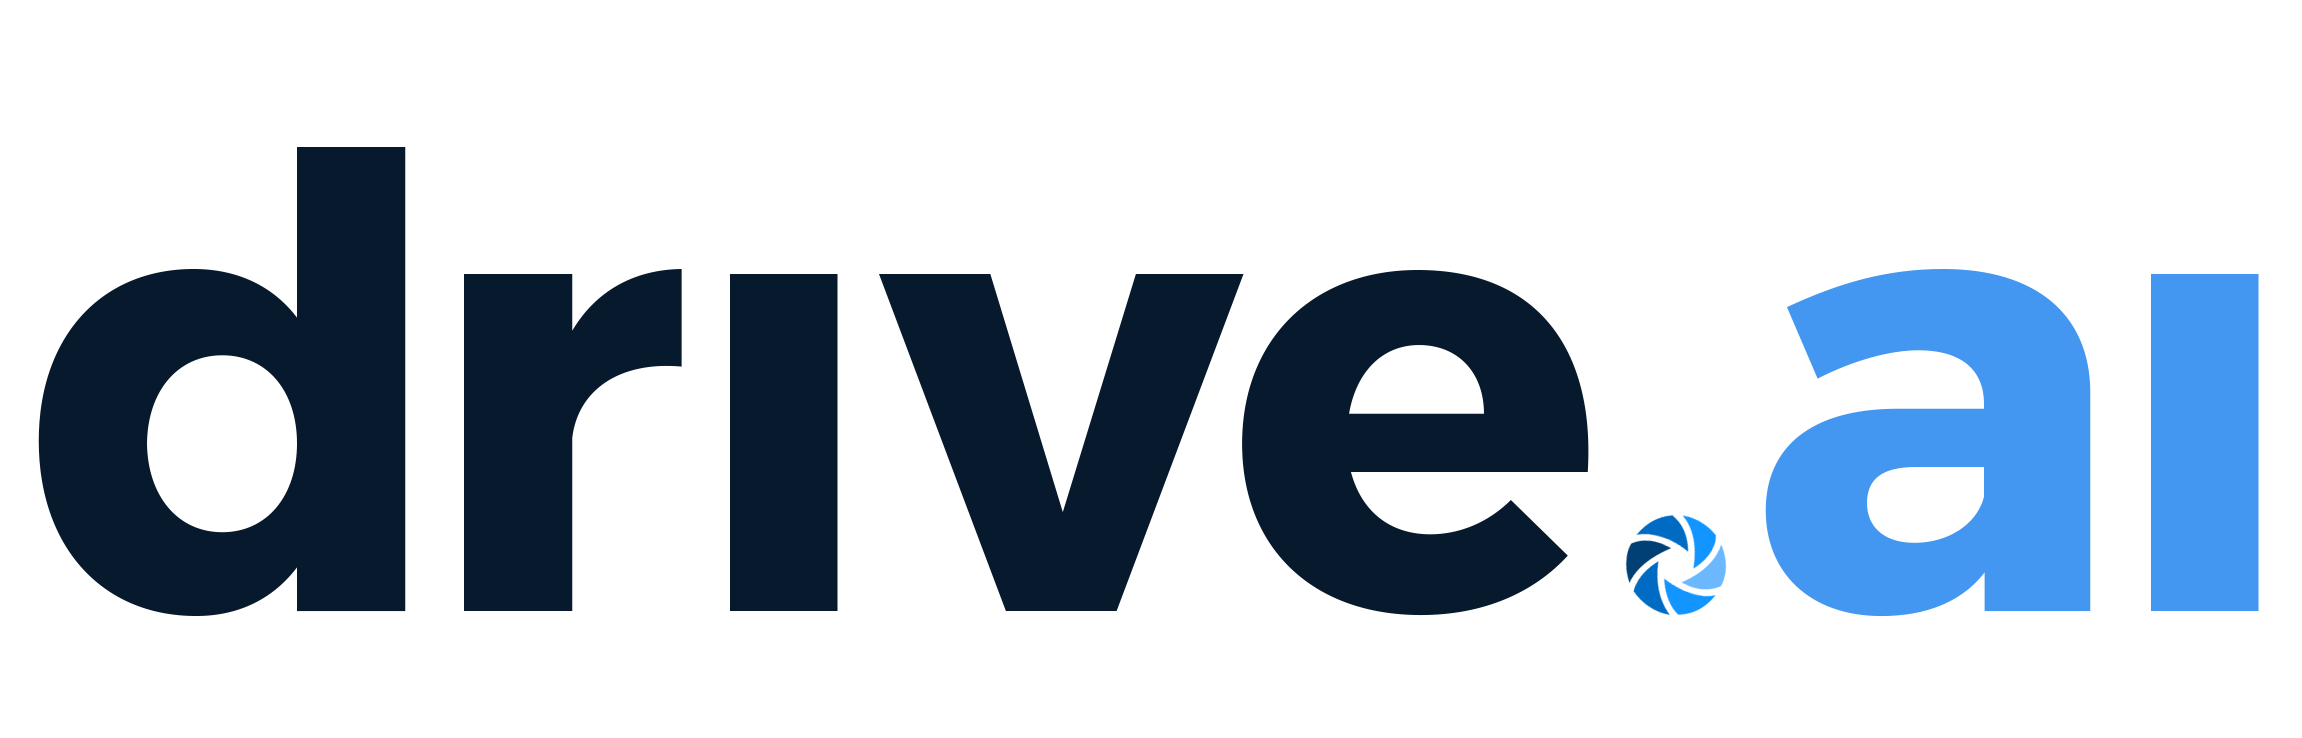 Drive.ai is an American technology company headquartered in Mountain View, California that uses artificial intelligence to make self-driving systems for cars.